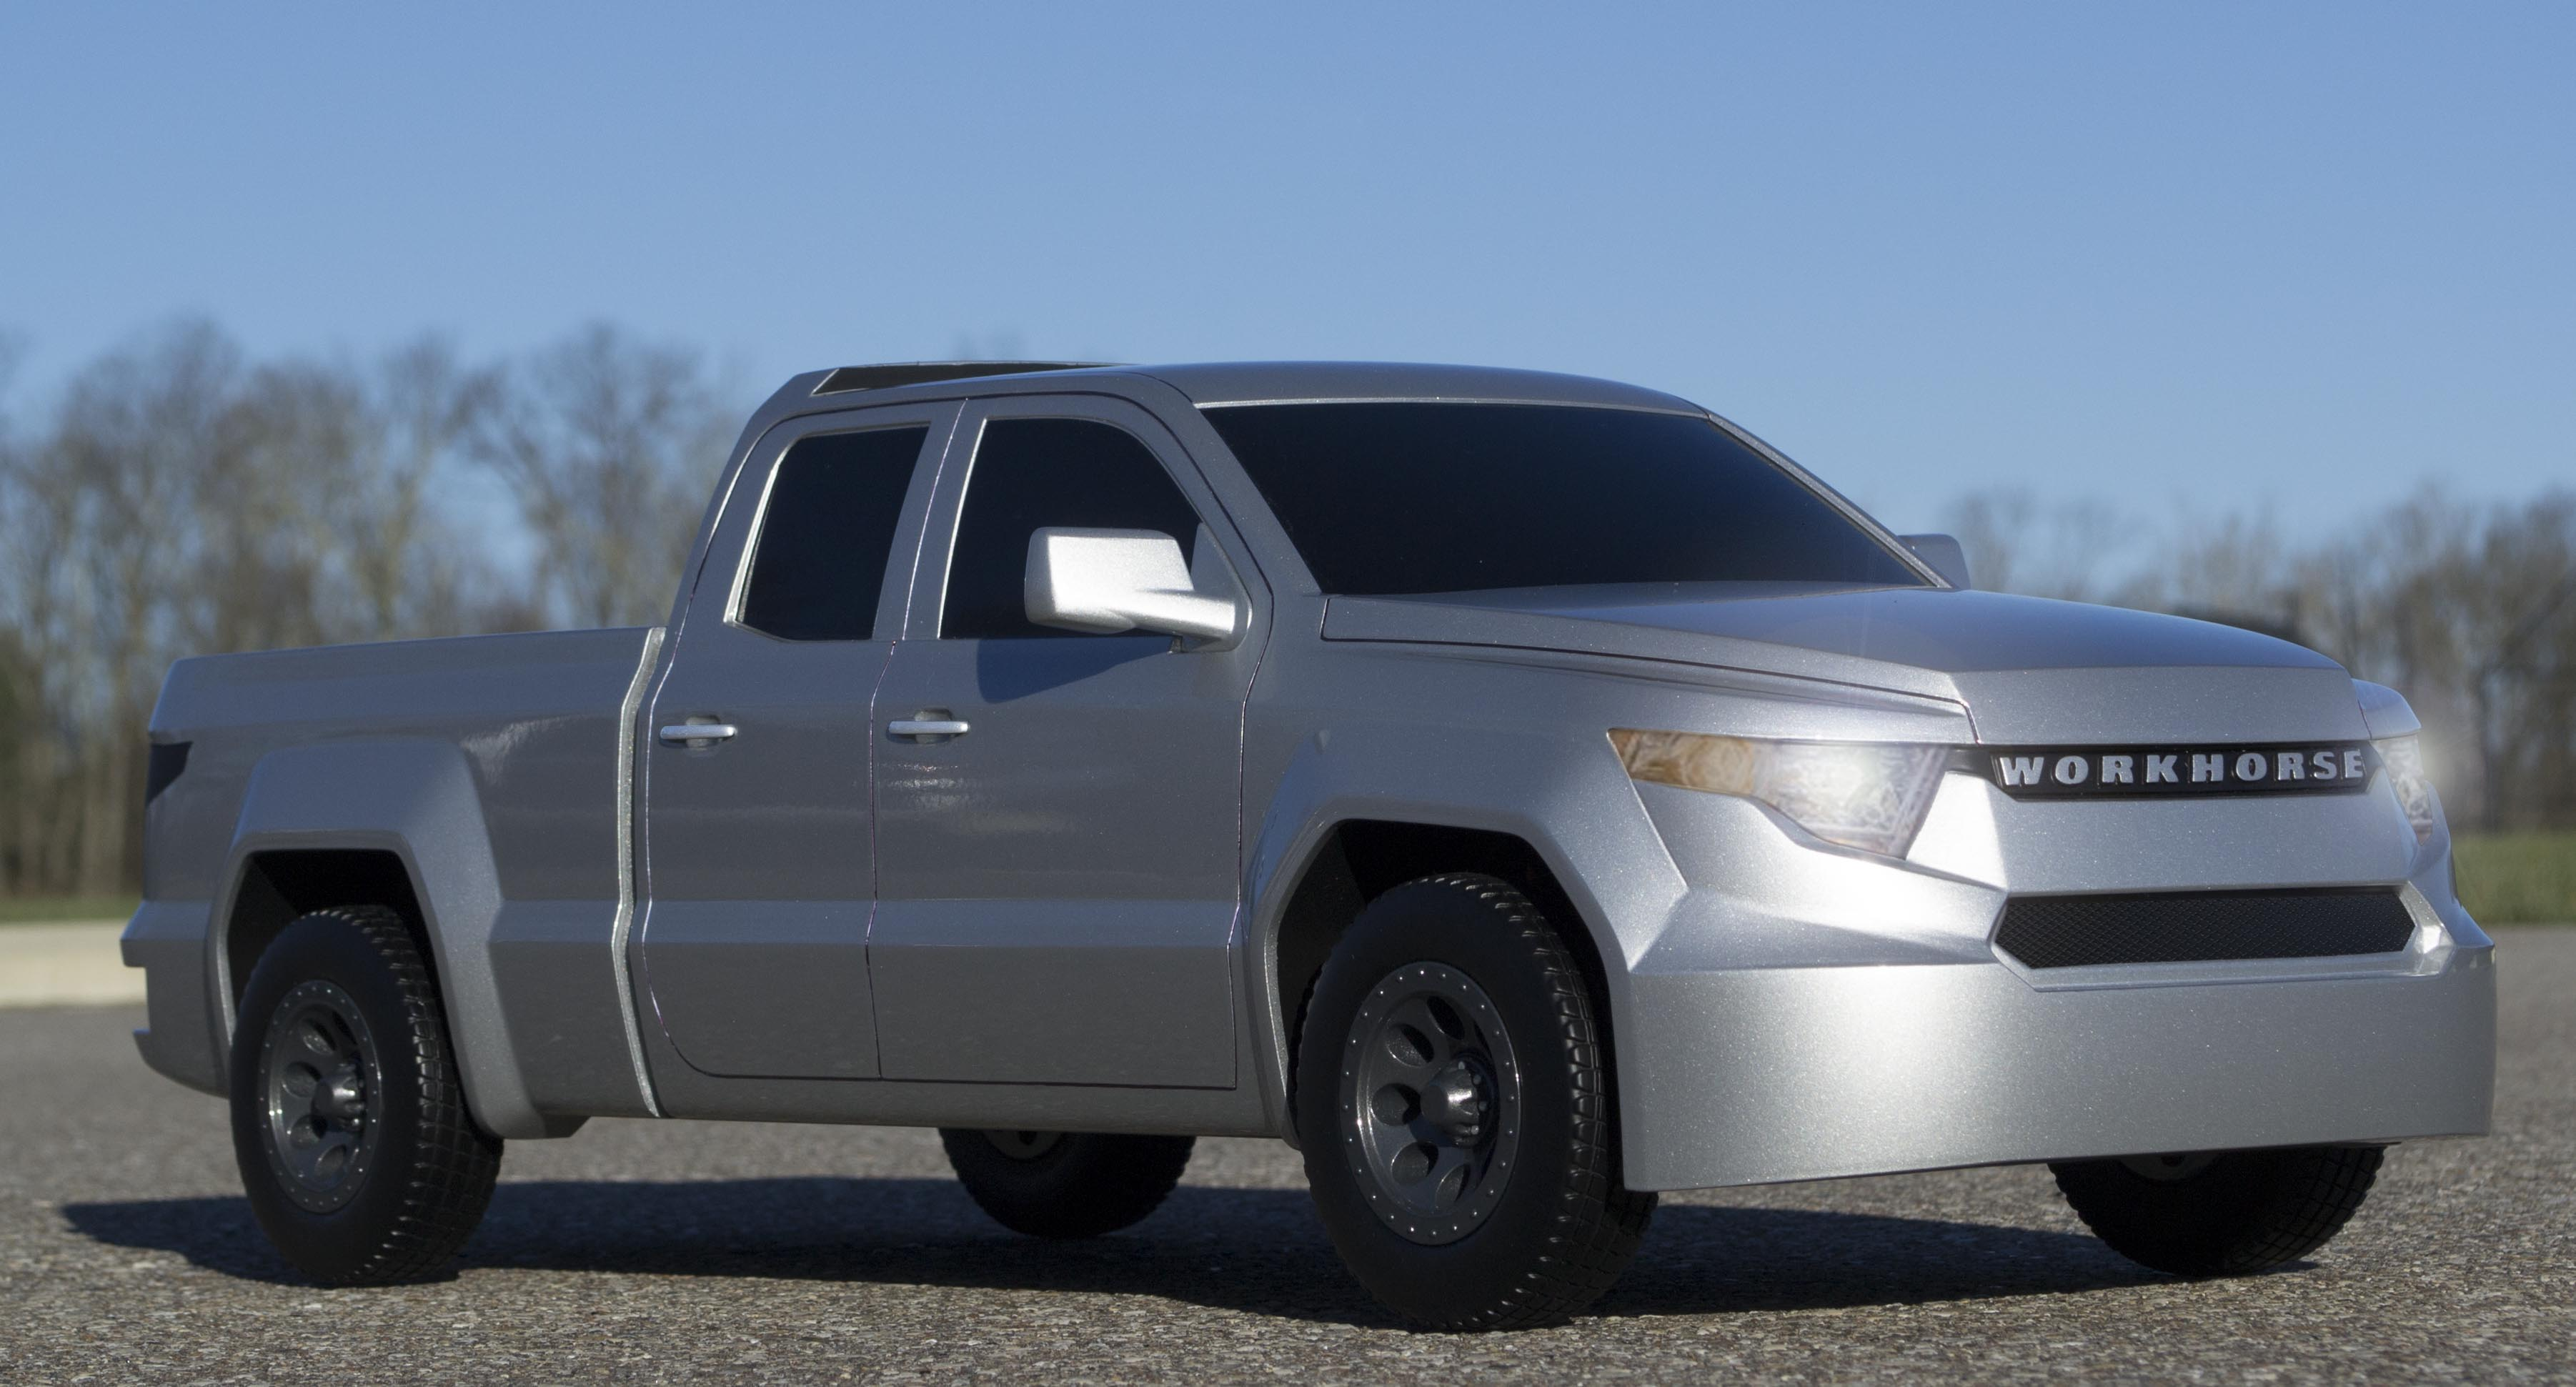 electric pickup truck - W-15-Pickup-Truck